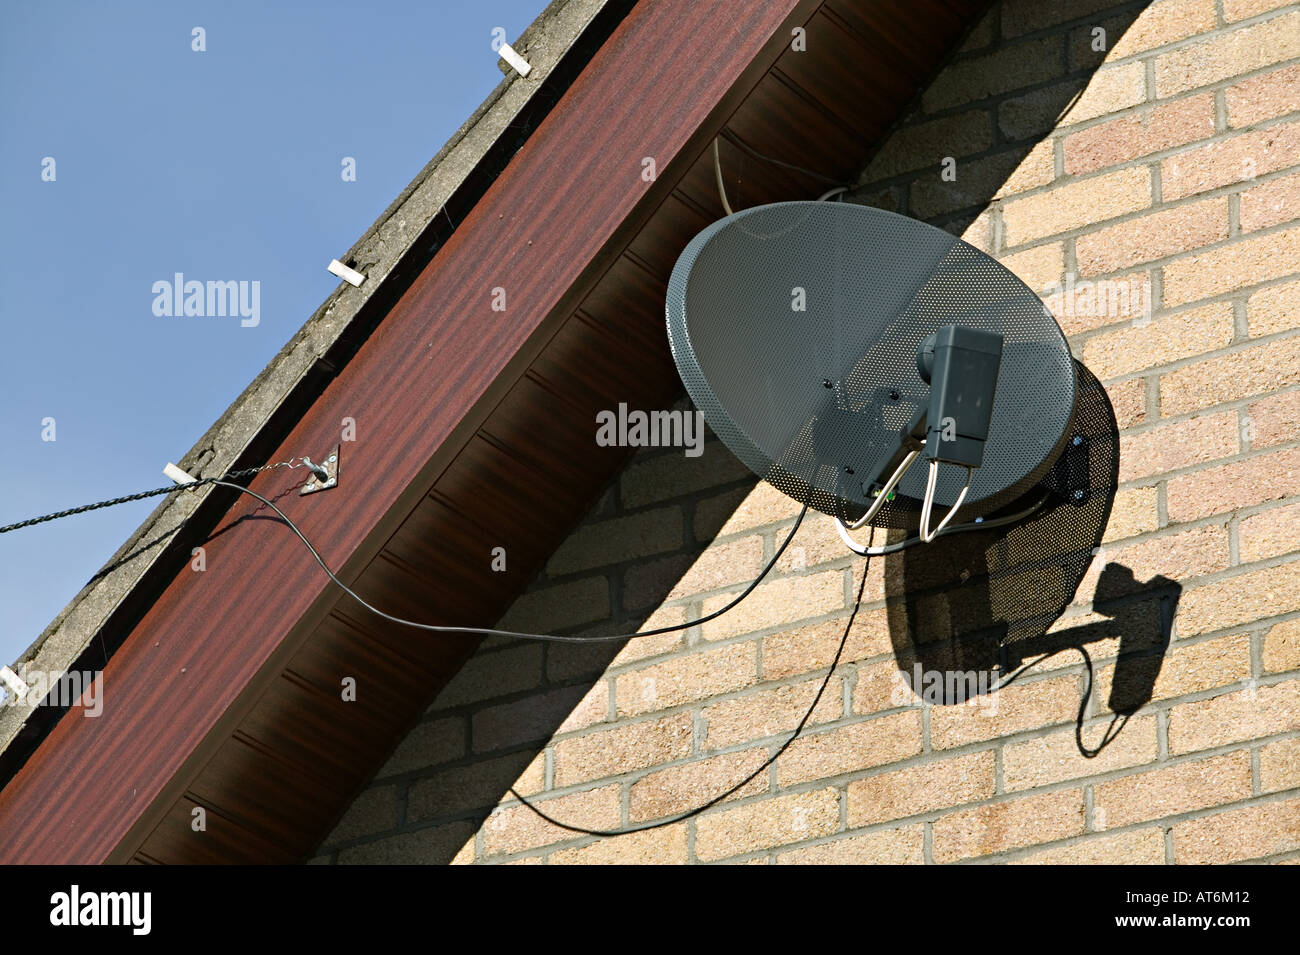 Cable Tv Dish Stock Photos Images Alamy Satellite House Wiring Receiver And Tied To Facia Of Roof On Domestic Wales Uk